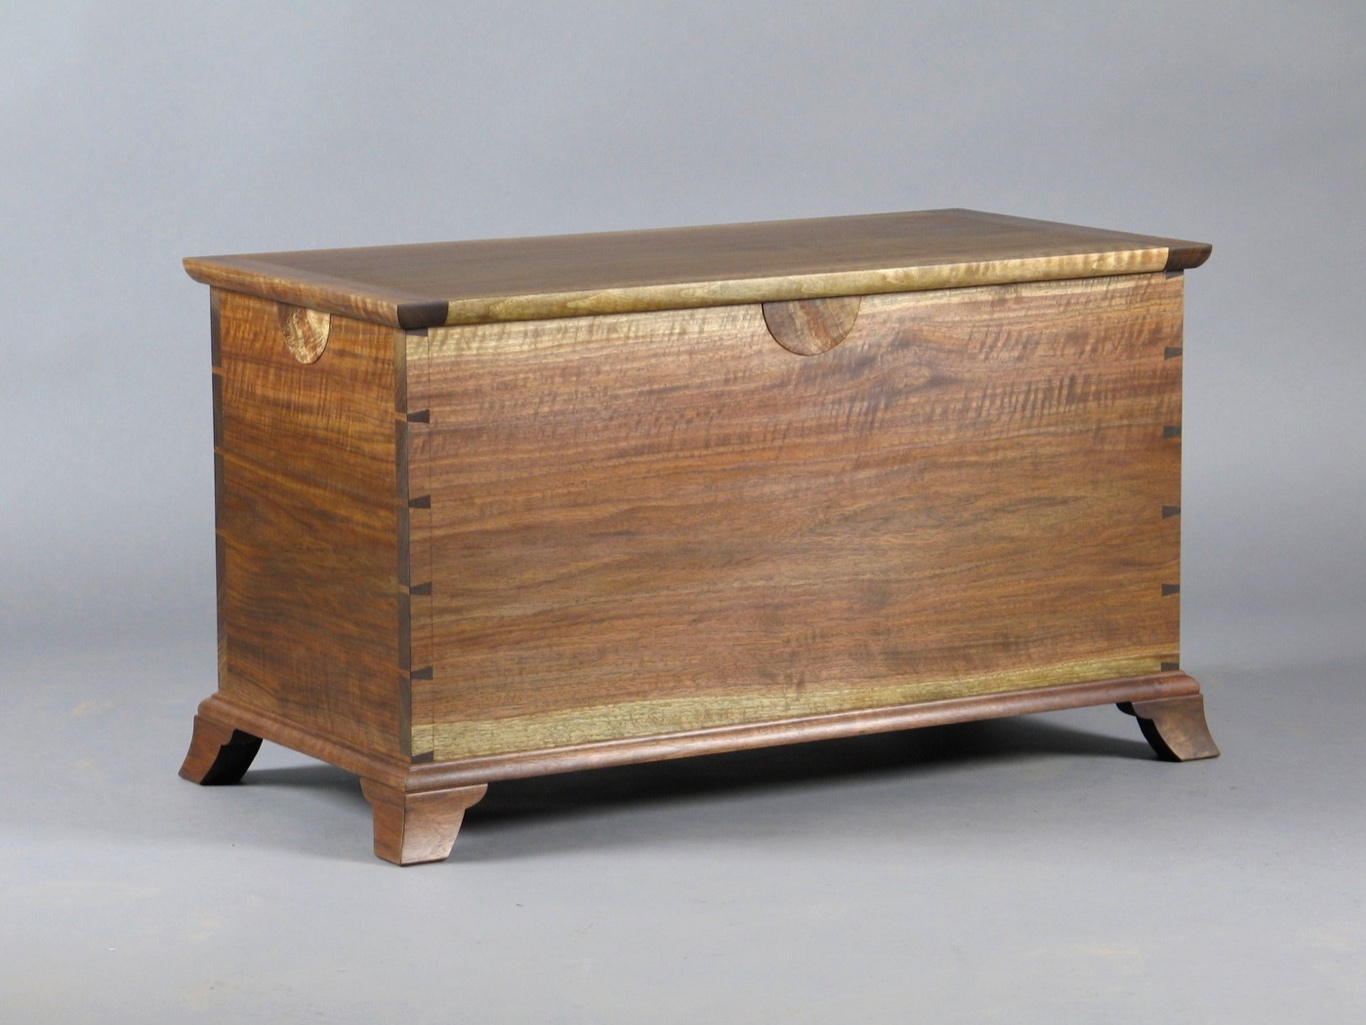 Laird blanket chest - walnut